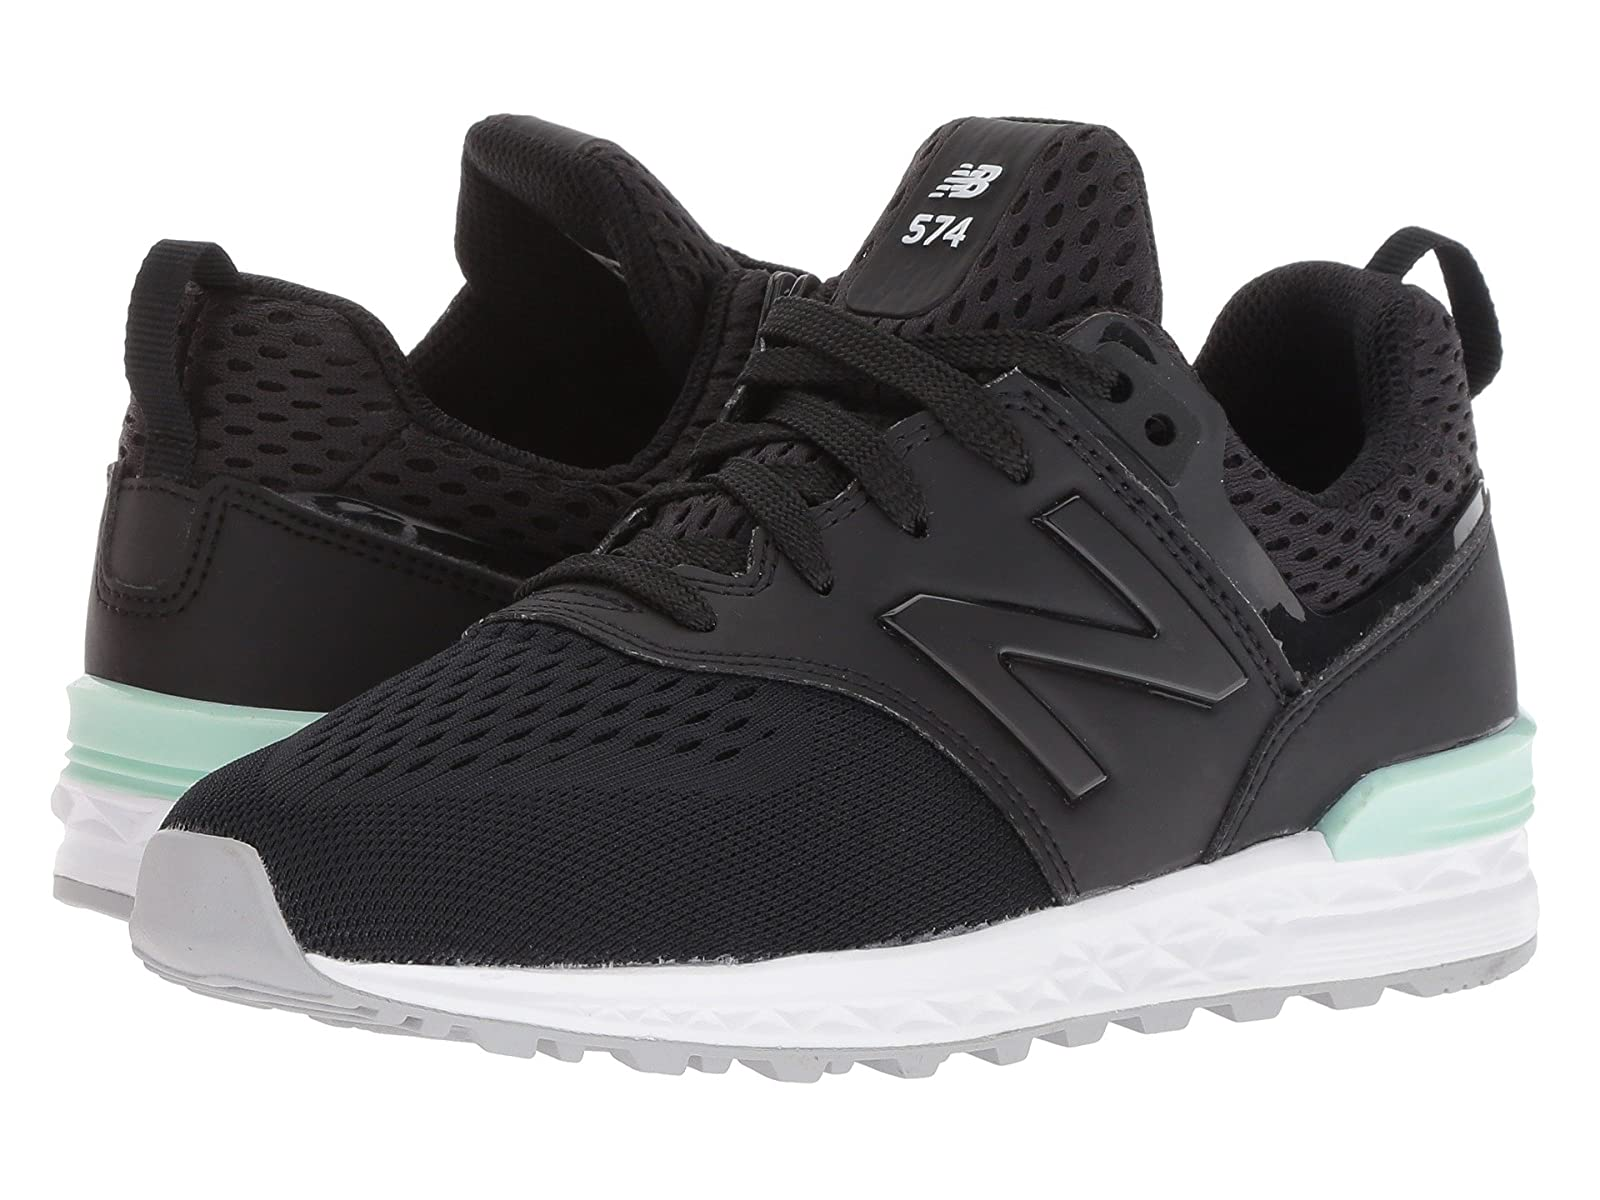 New Balance Kids GS574v2 (Little Kid)Cheap and distinctive eye-catching shoes